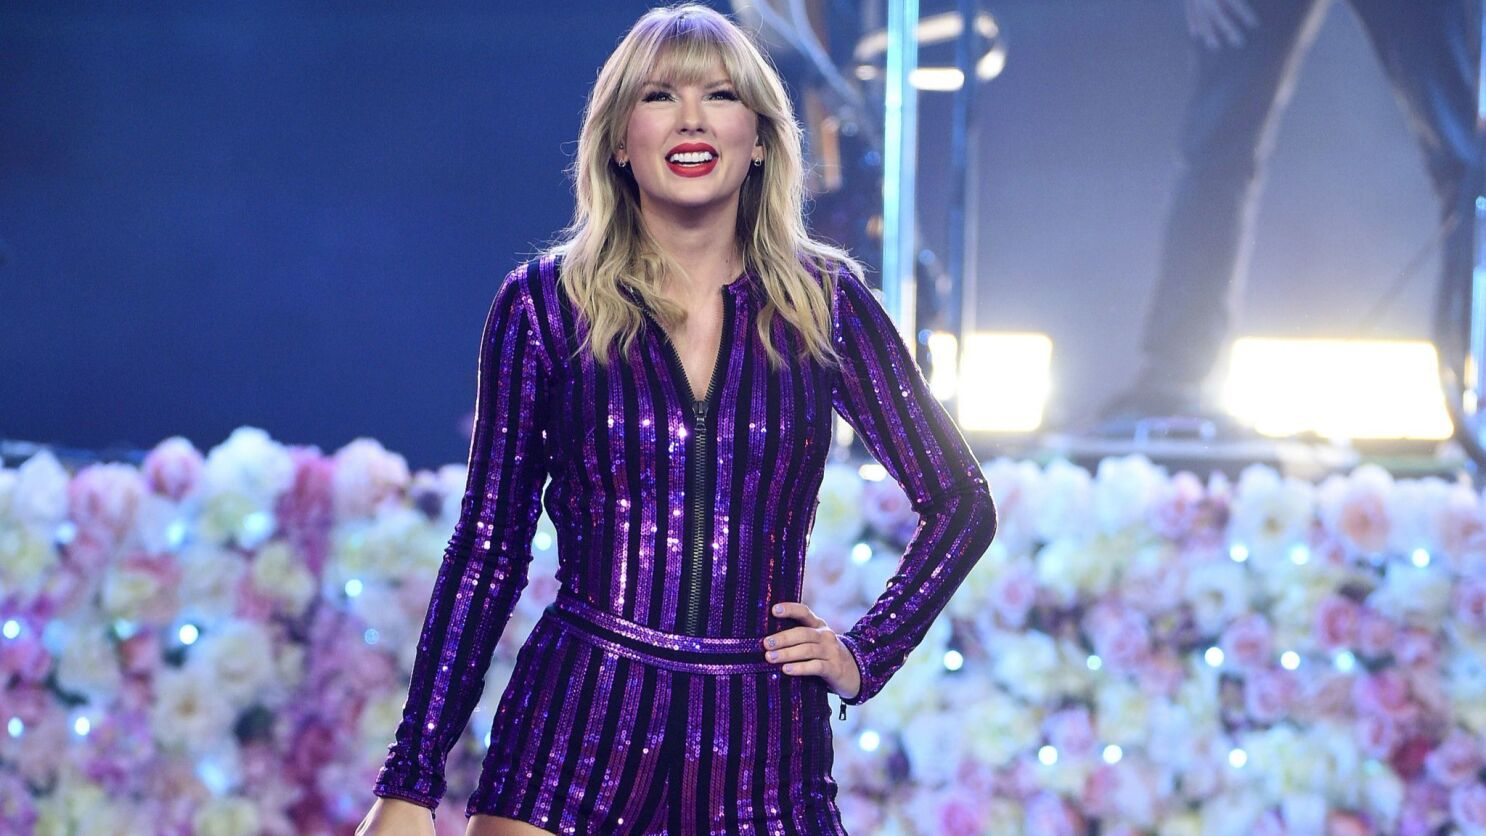 Review: Taylor Swift's 'Lover' is grown-up, complex pop